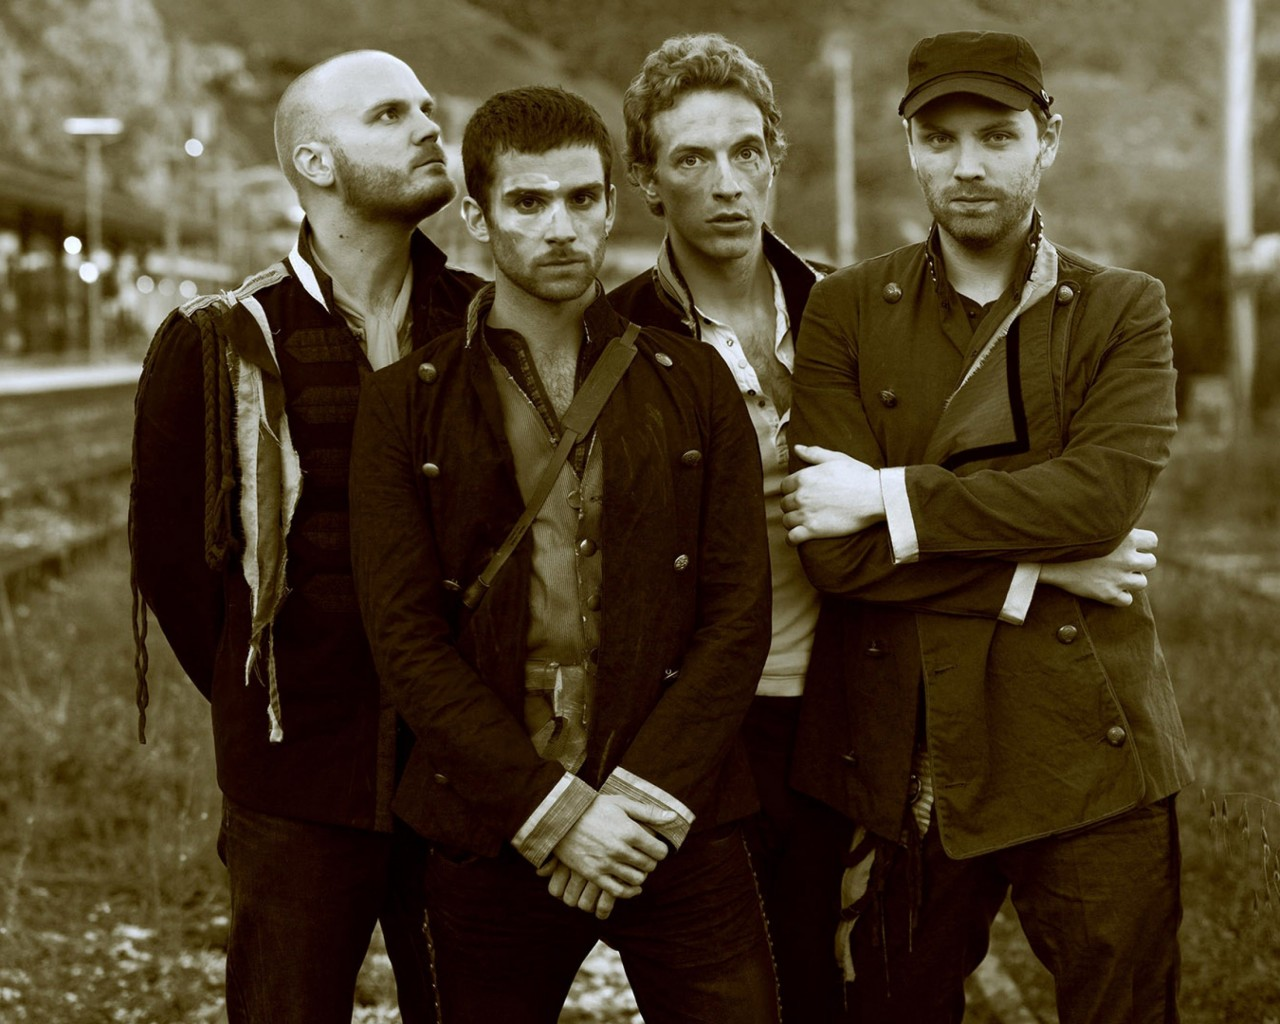 Coldplay Band Sepia Wallpaper for Desktop 1280x1024